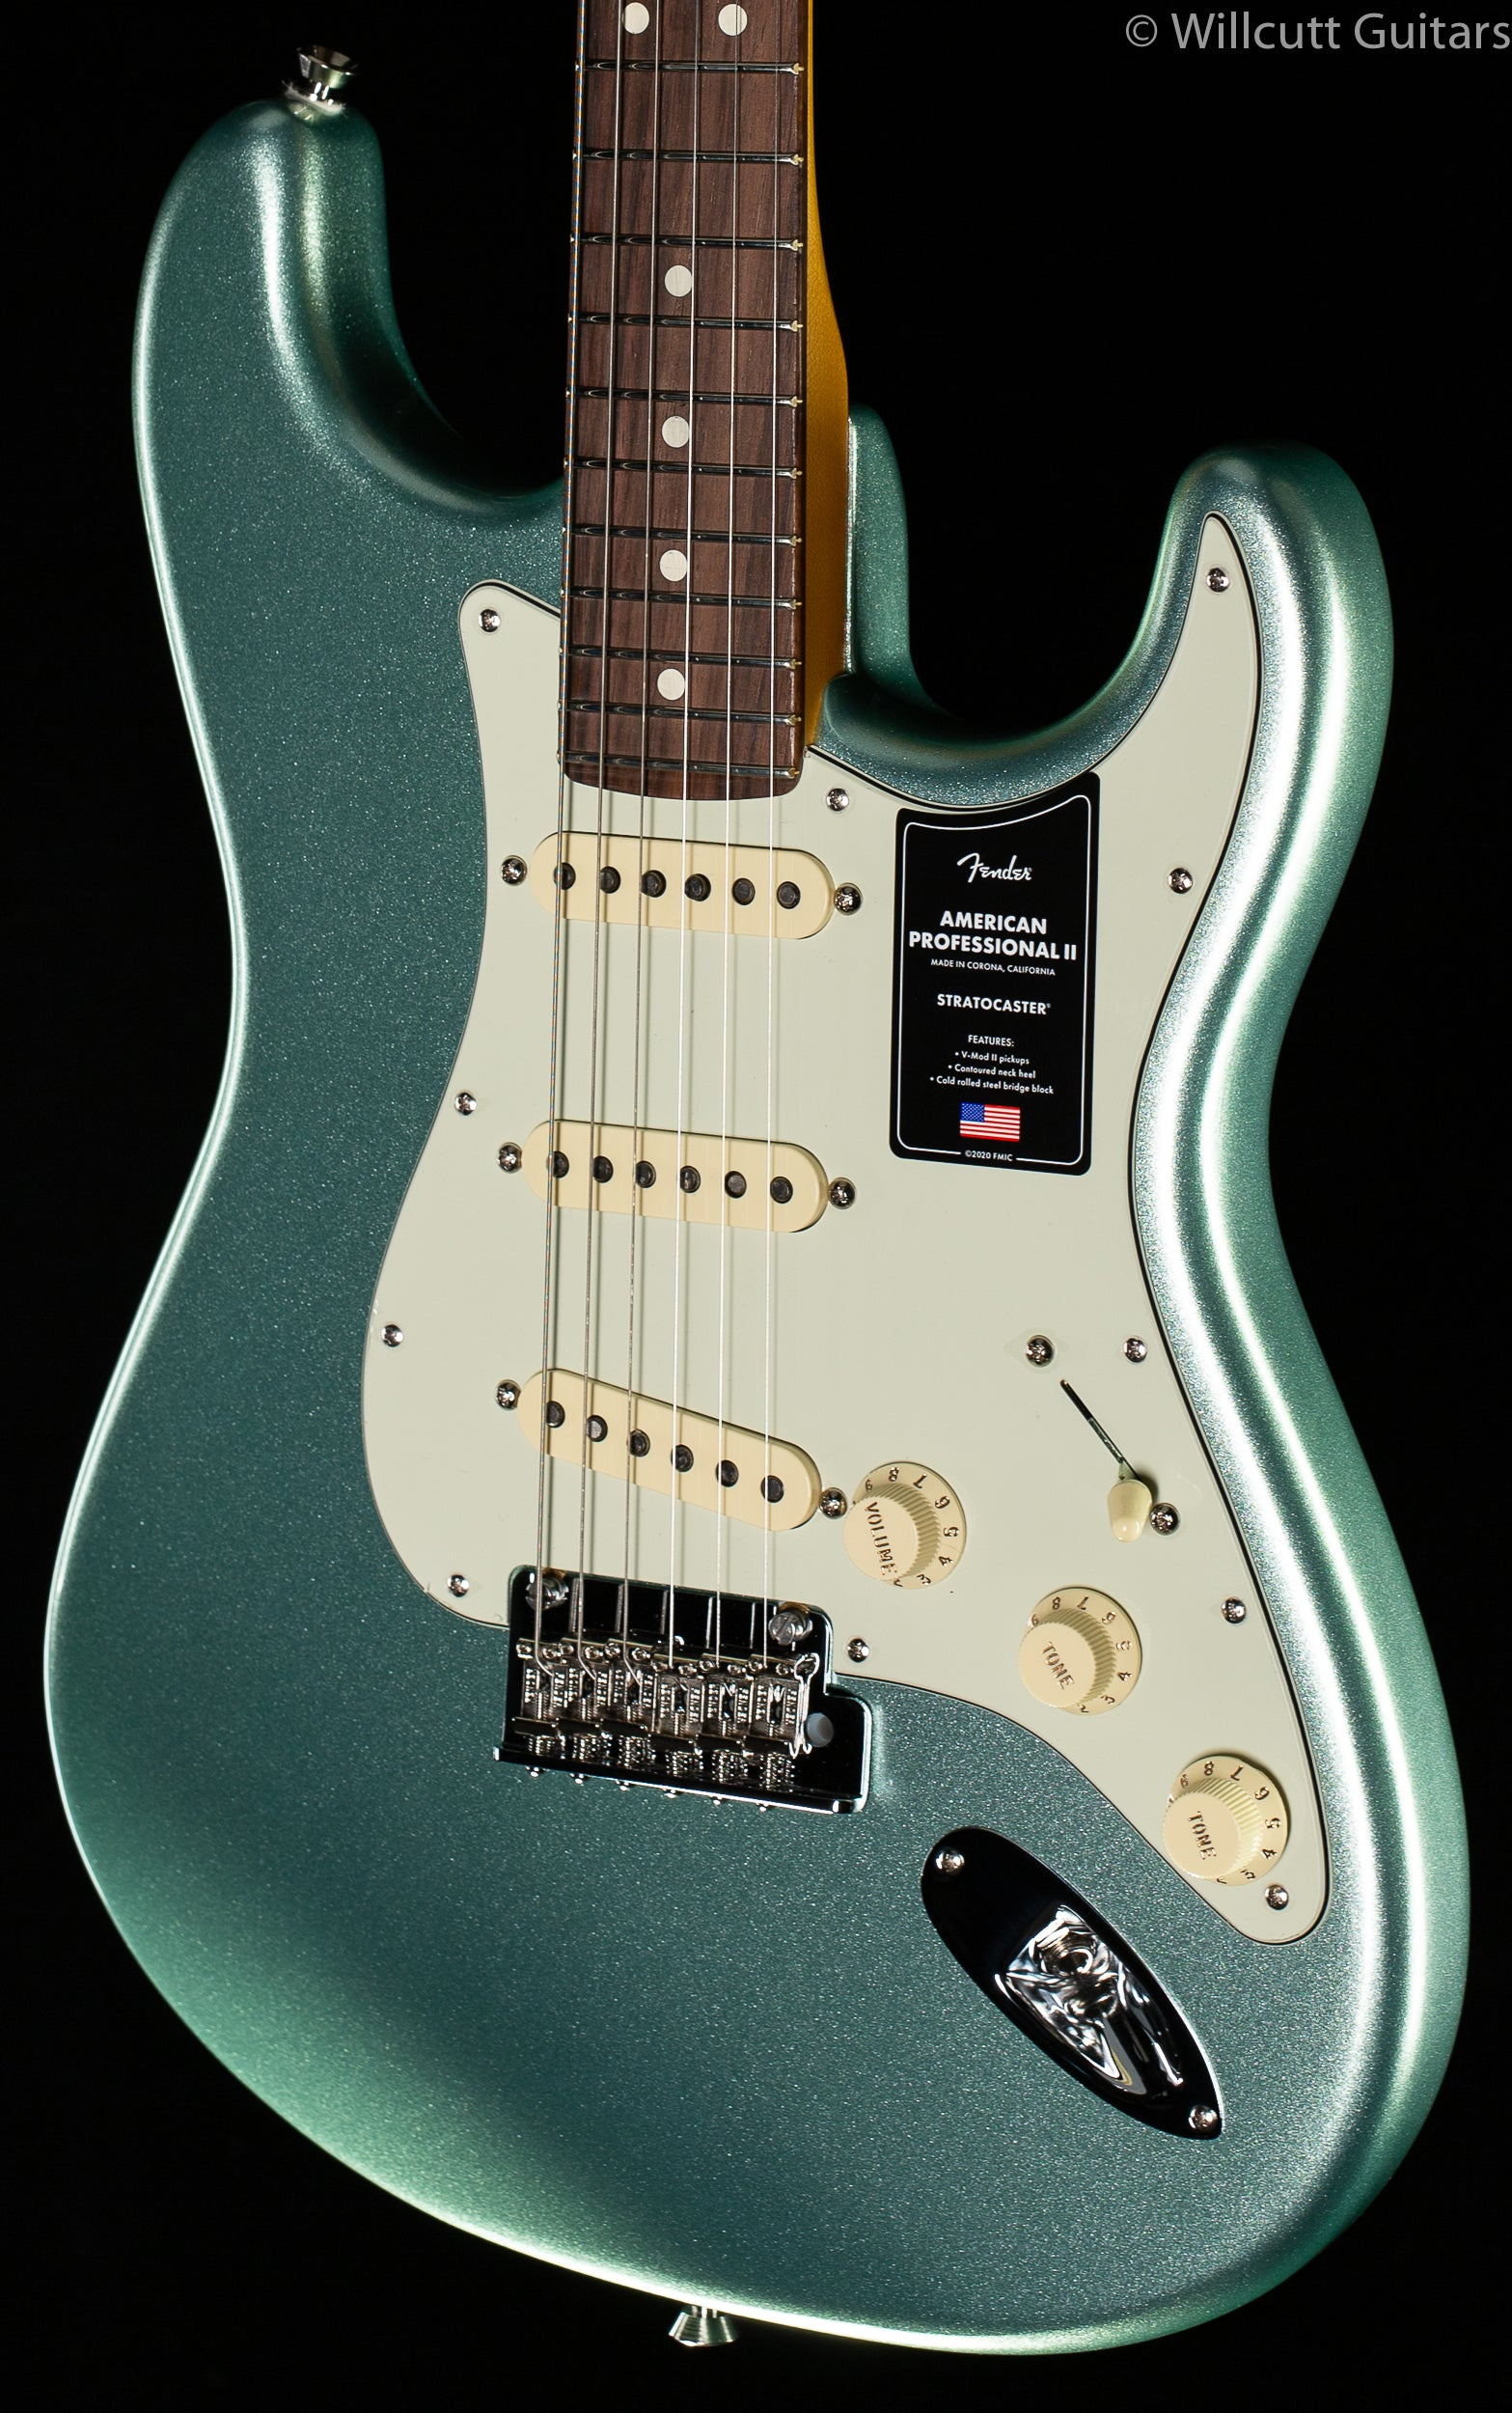 Fender American Professional II Stratocaster Mystic Surf Green Rosewood Fingerboard